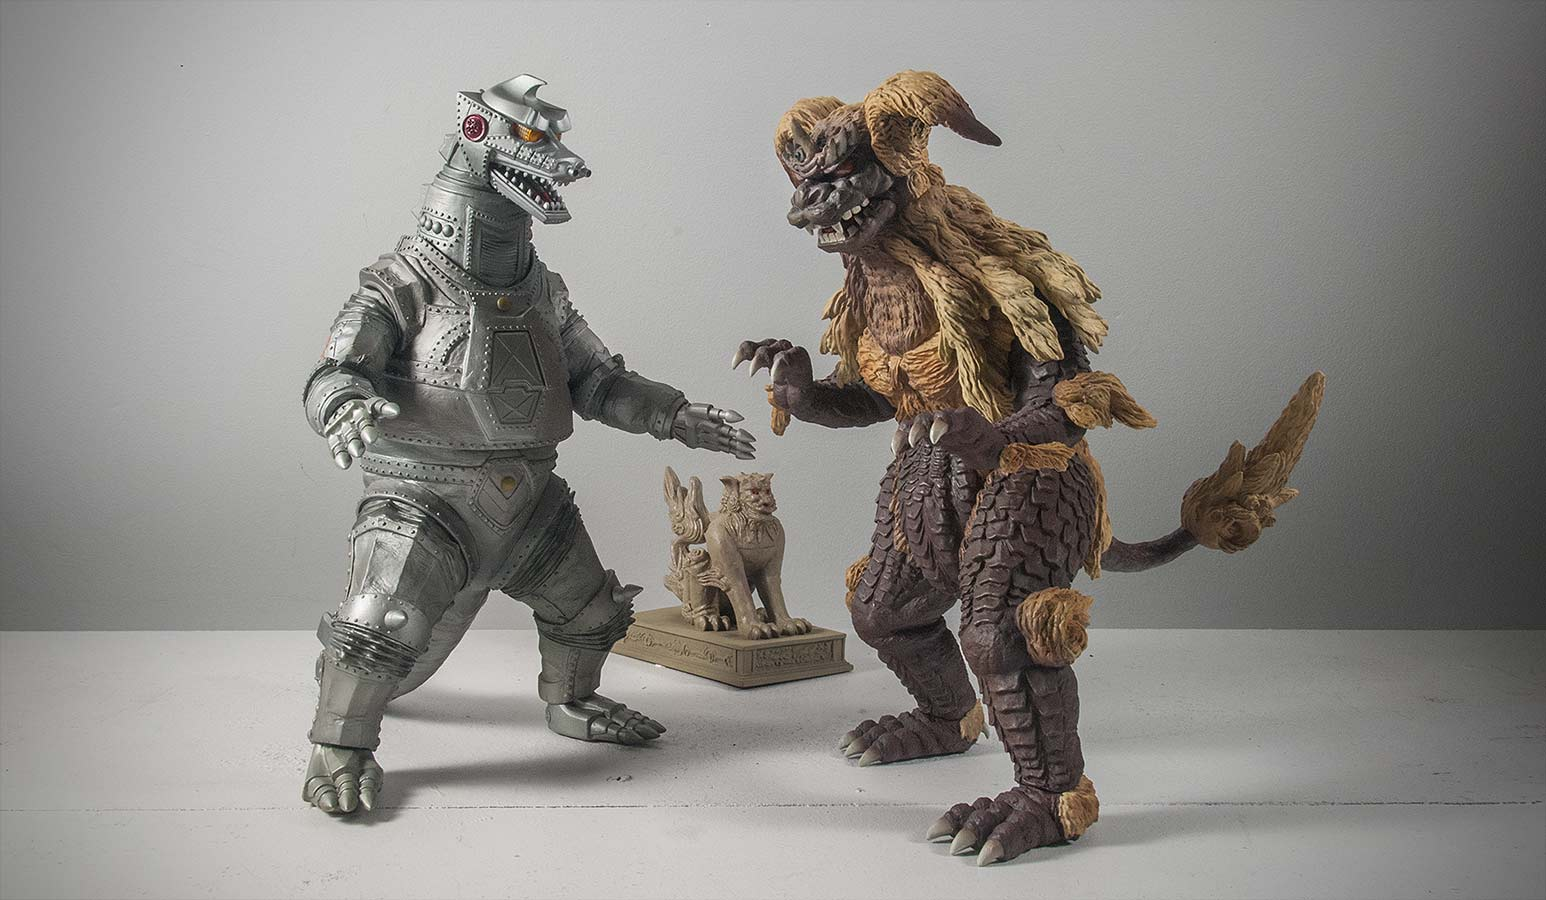 X-Plus King Caesar size comparison with Mechagodzilla 1974.